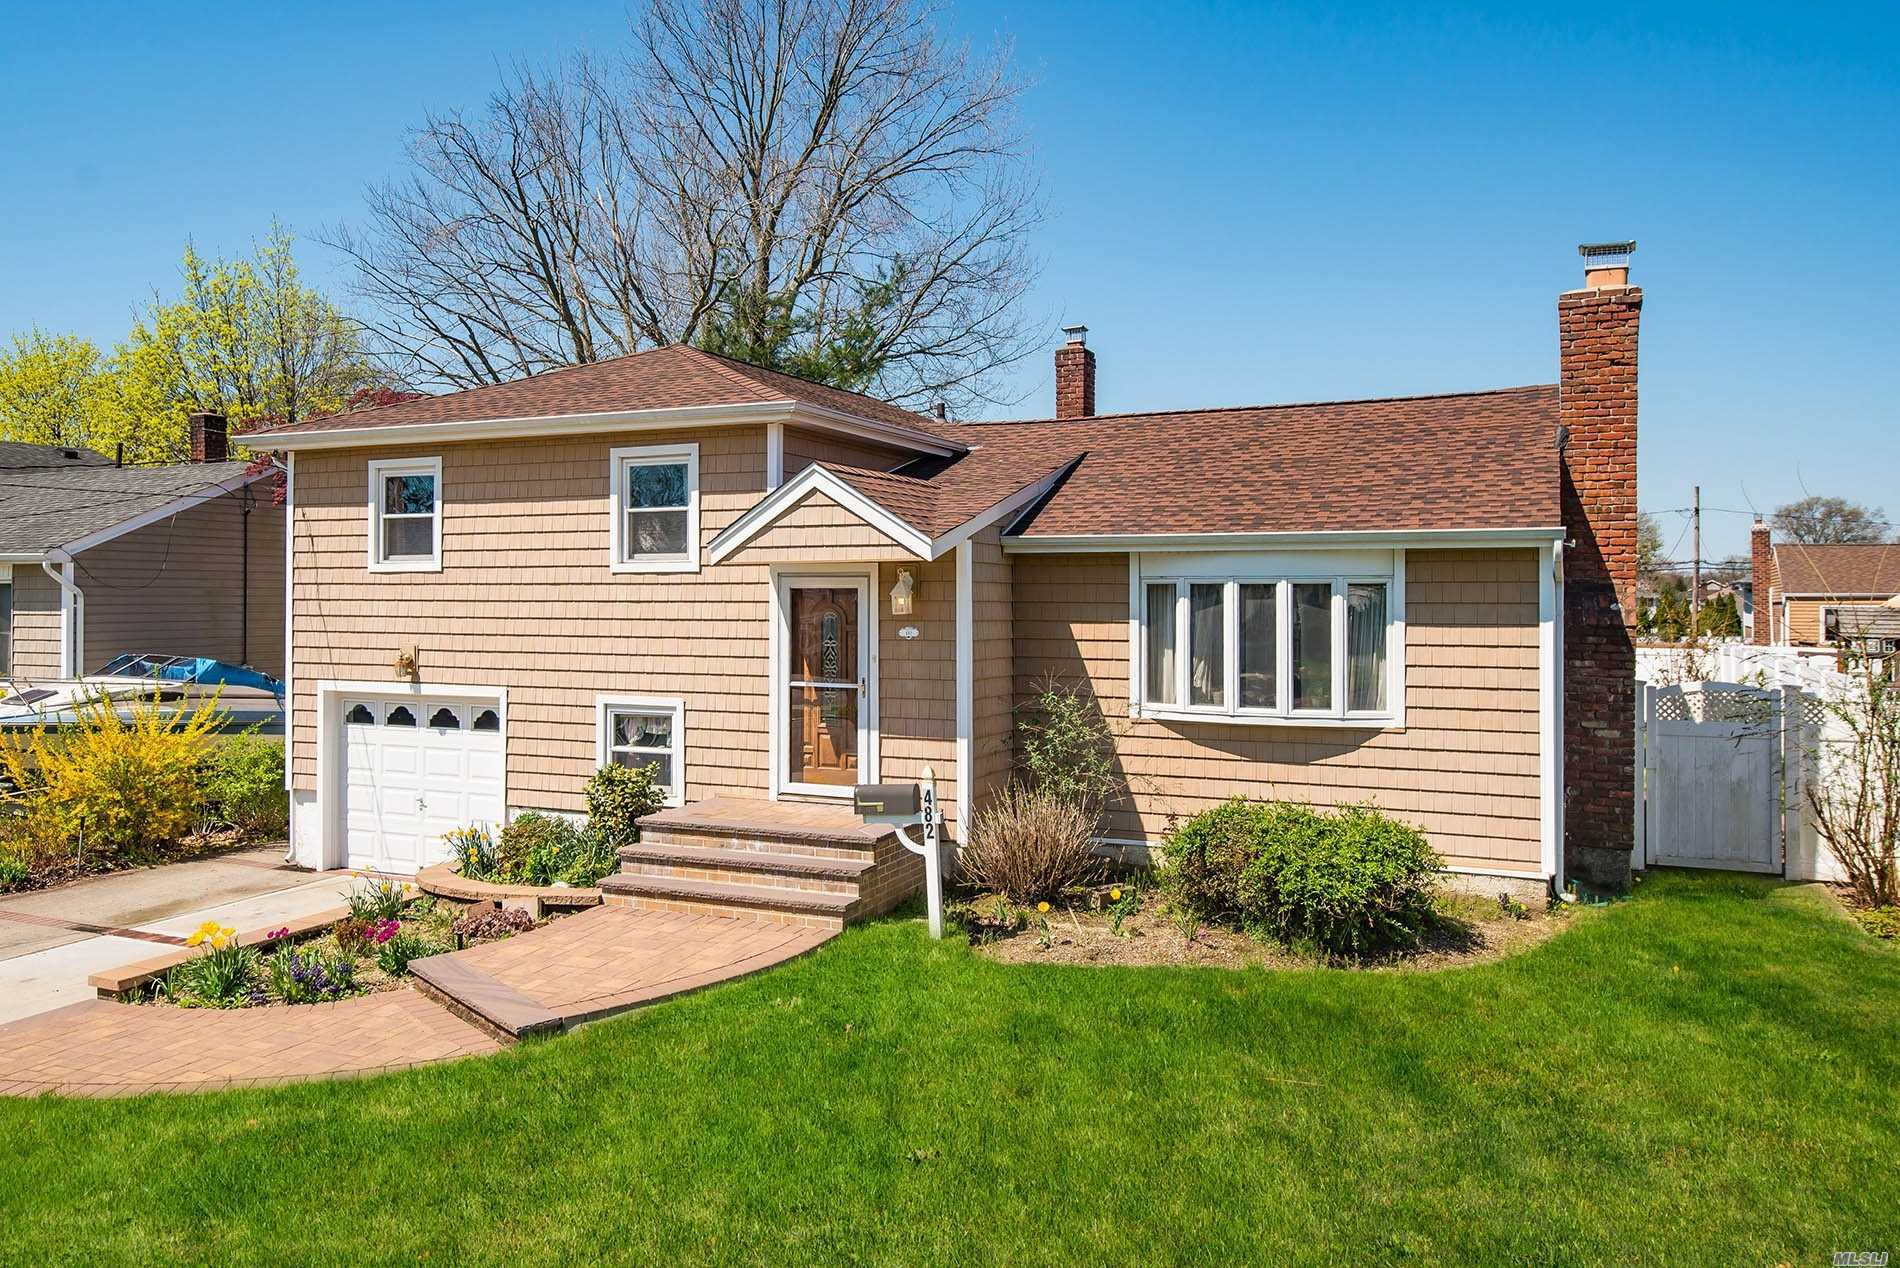 A Beautiful Split Level Home, Mid-Block Location on a Quiet Street in Massapequa Park. This Home Features a Spacious Lr w/ Wood Frplce & Vaulted Ceiling, Formal Dining Rm w/Slider to the Deck, Kitchen with New Granite Ctrs, Master Bdrm w/.5 Bath + 2 Bdrms and 2 Bthrms, Cozy Fam. Rm, Laundry/Pantry Area, Garage Entry and OSE, Finished Basement & Utilites, Gas/Ha, 2 Ductless Dual AC/Heat, A Fully Fenced Private Backyard, Enclosed Sunrm, Newer Exterior/Roof/Windows, 1 Car Garage, IGS, Low Taxes.